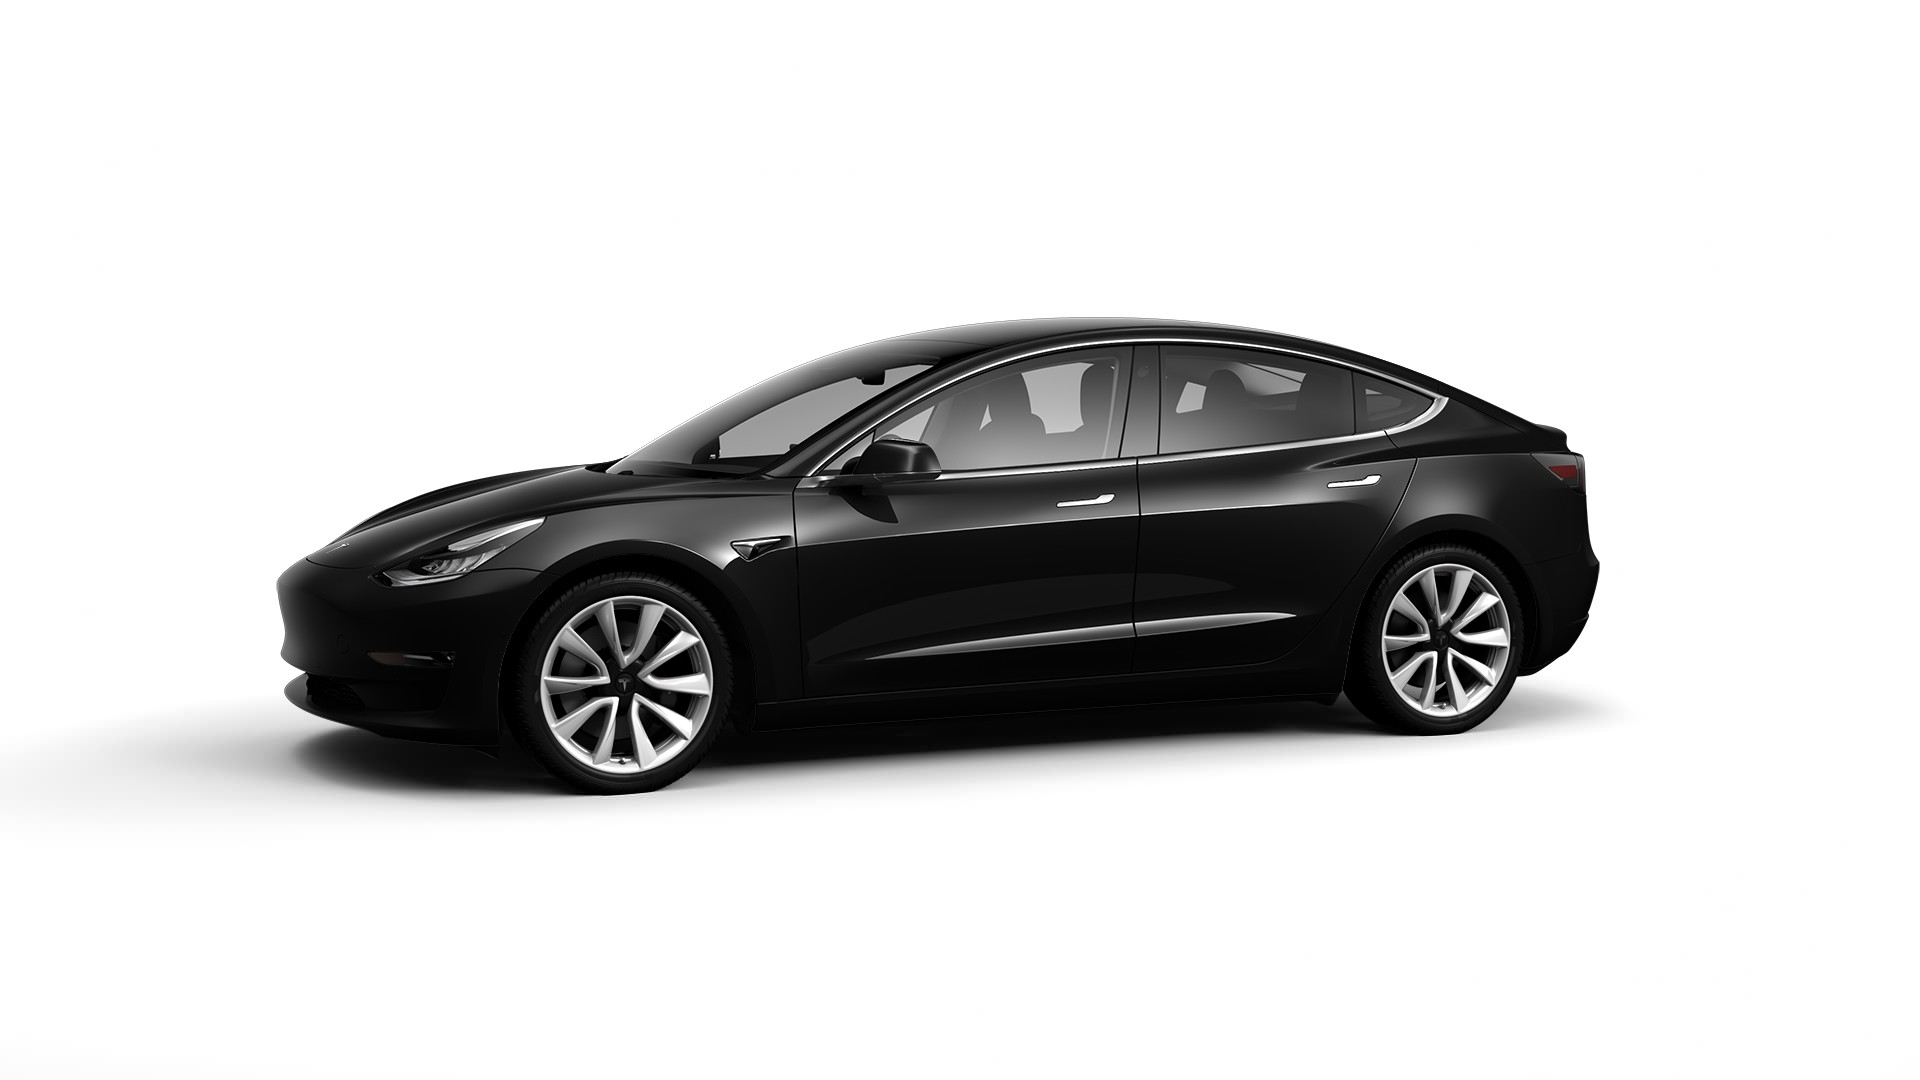 inventory tesla model 3 long-range dual motor awd Solid Black